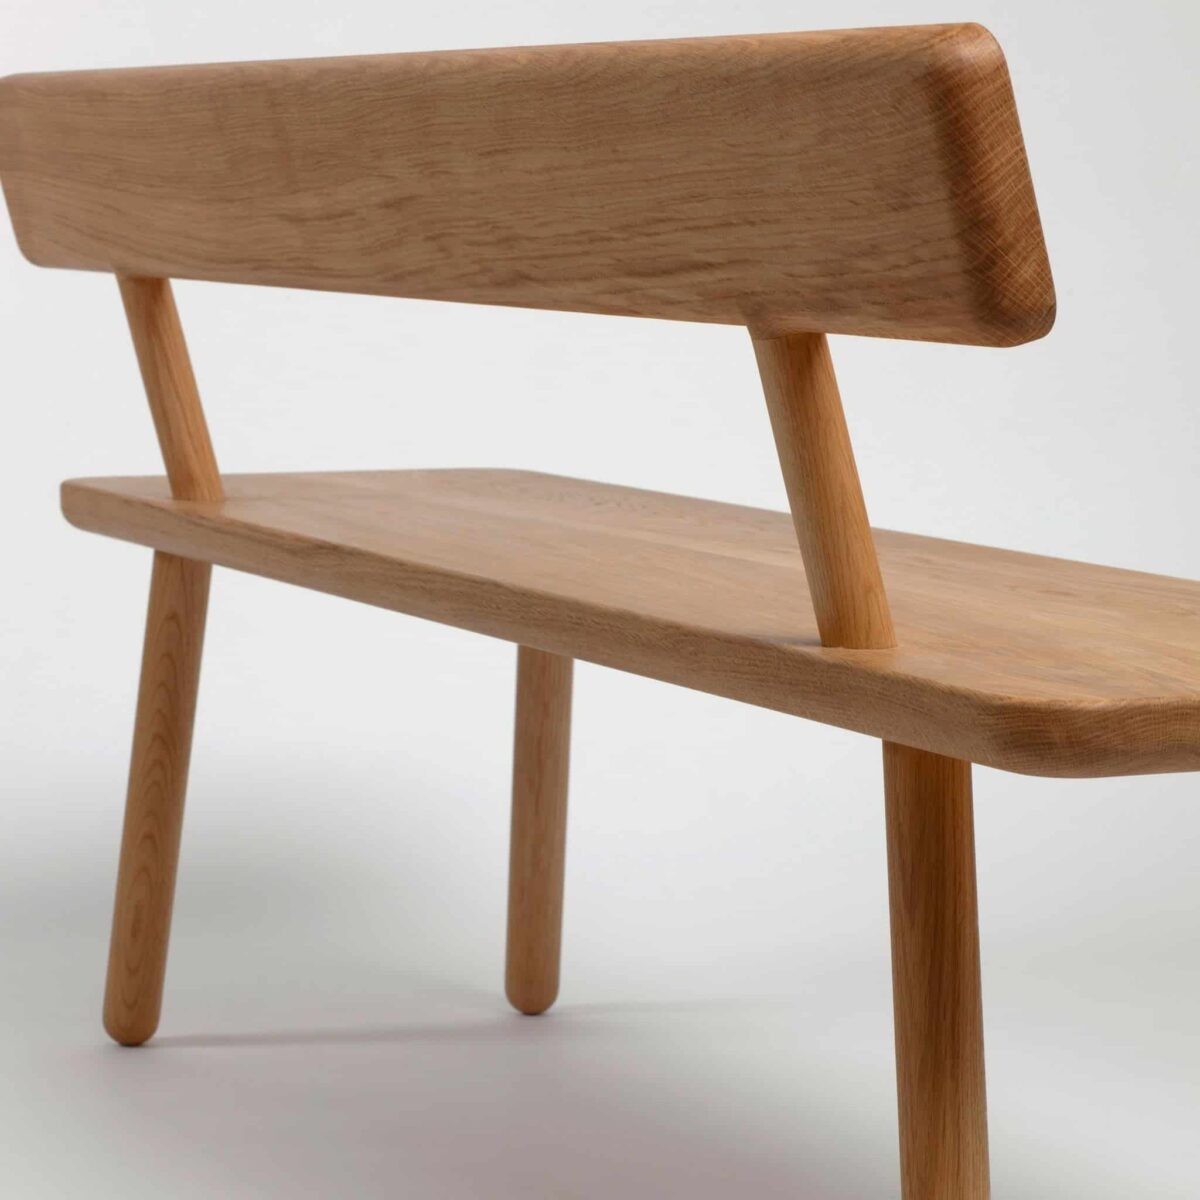 another-country-bench-one-back-oak-natural-004